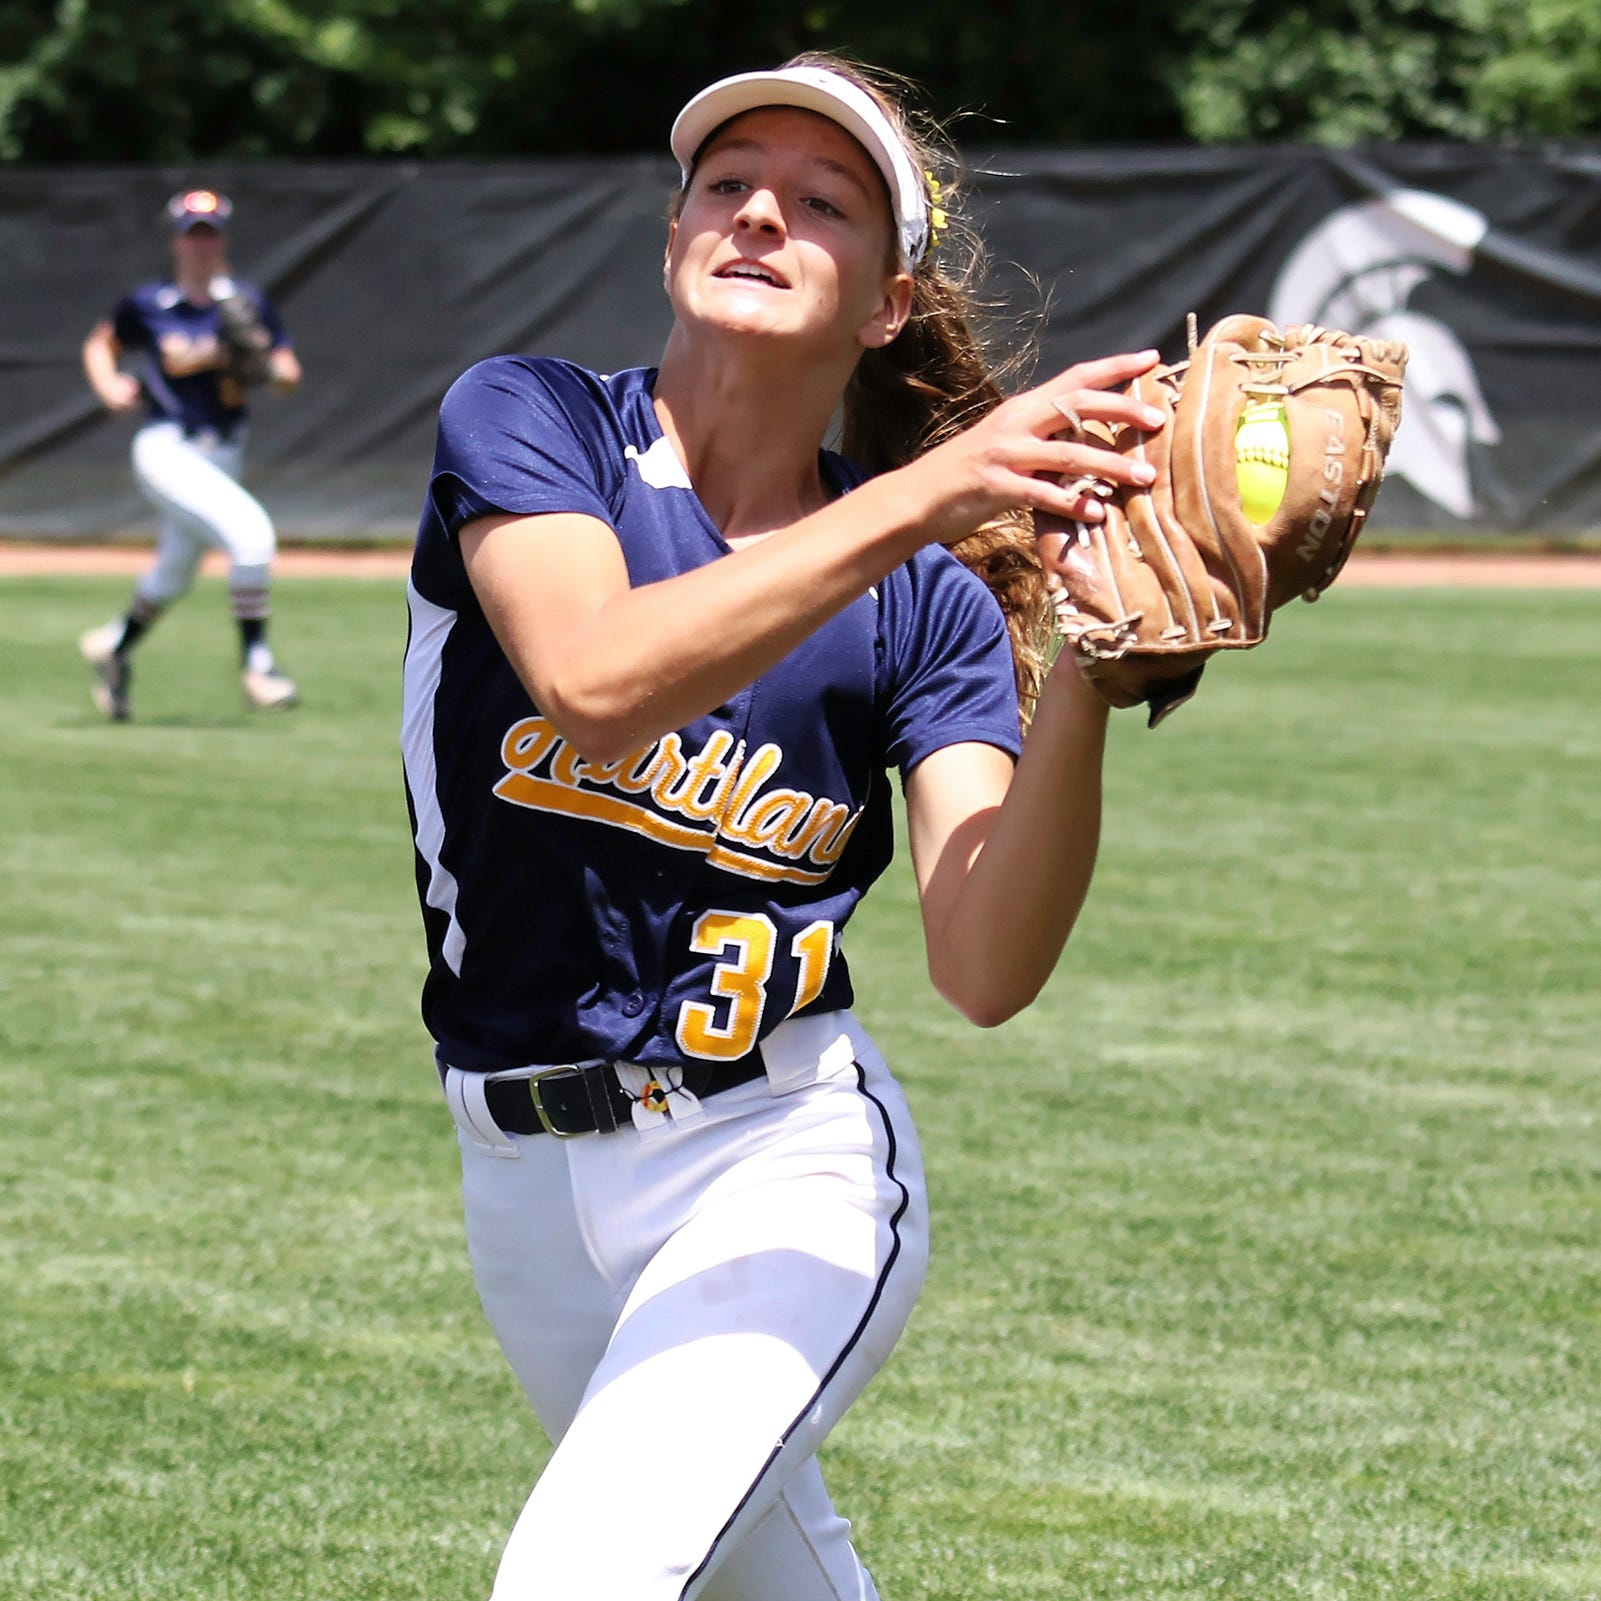 Prep roundup: Hartland pitches two softball no-hitters against Wayne Memorial